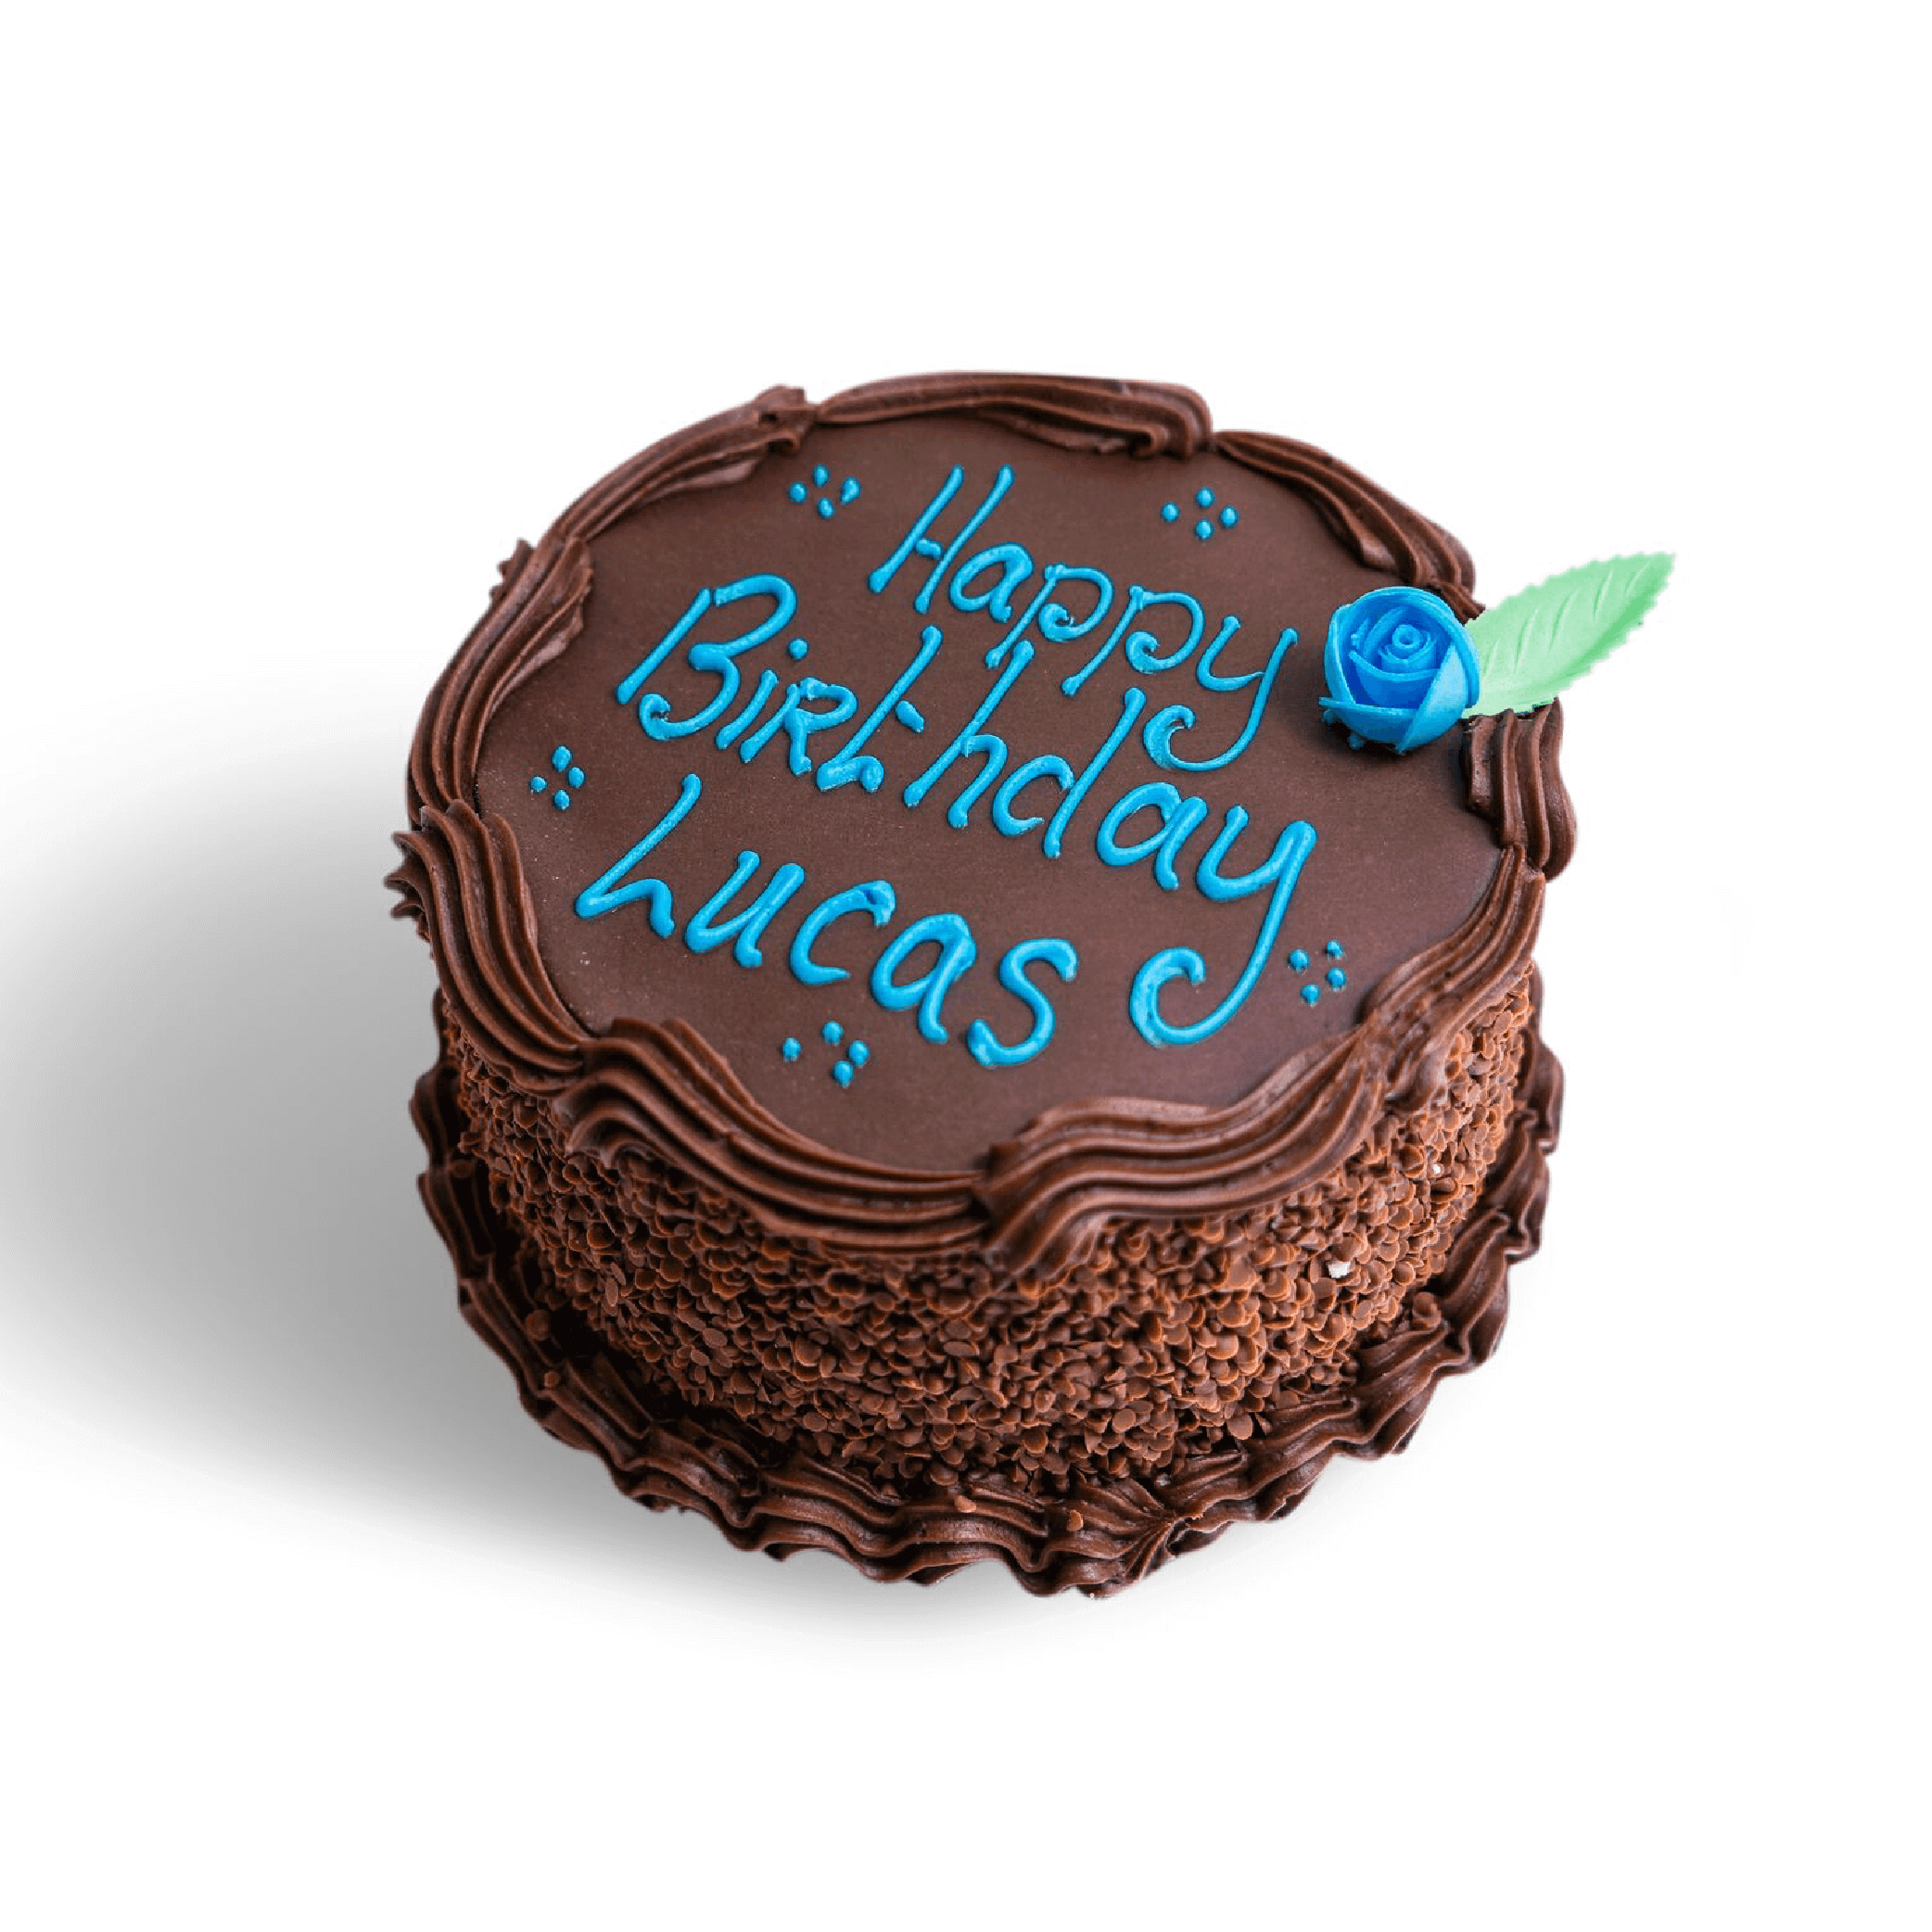 A chocolate birthday with blue writing